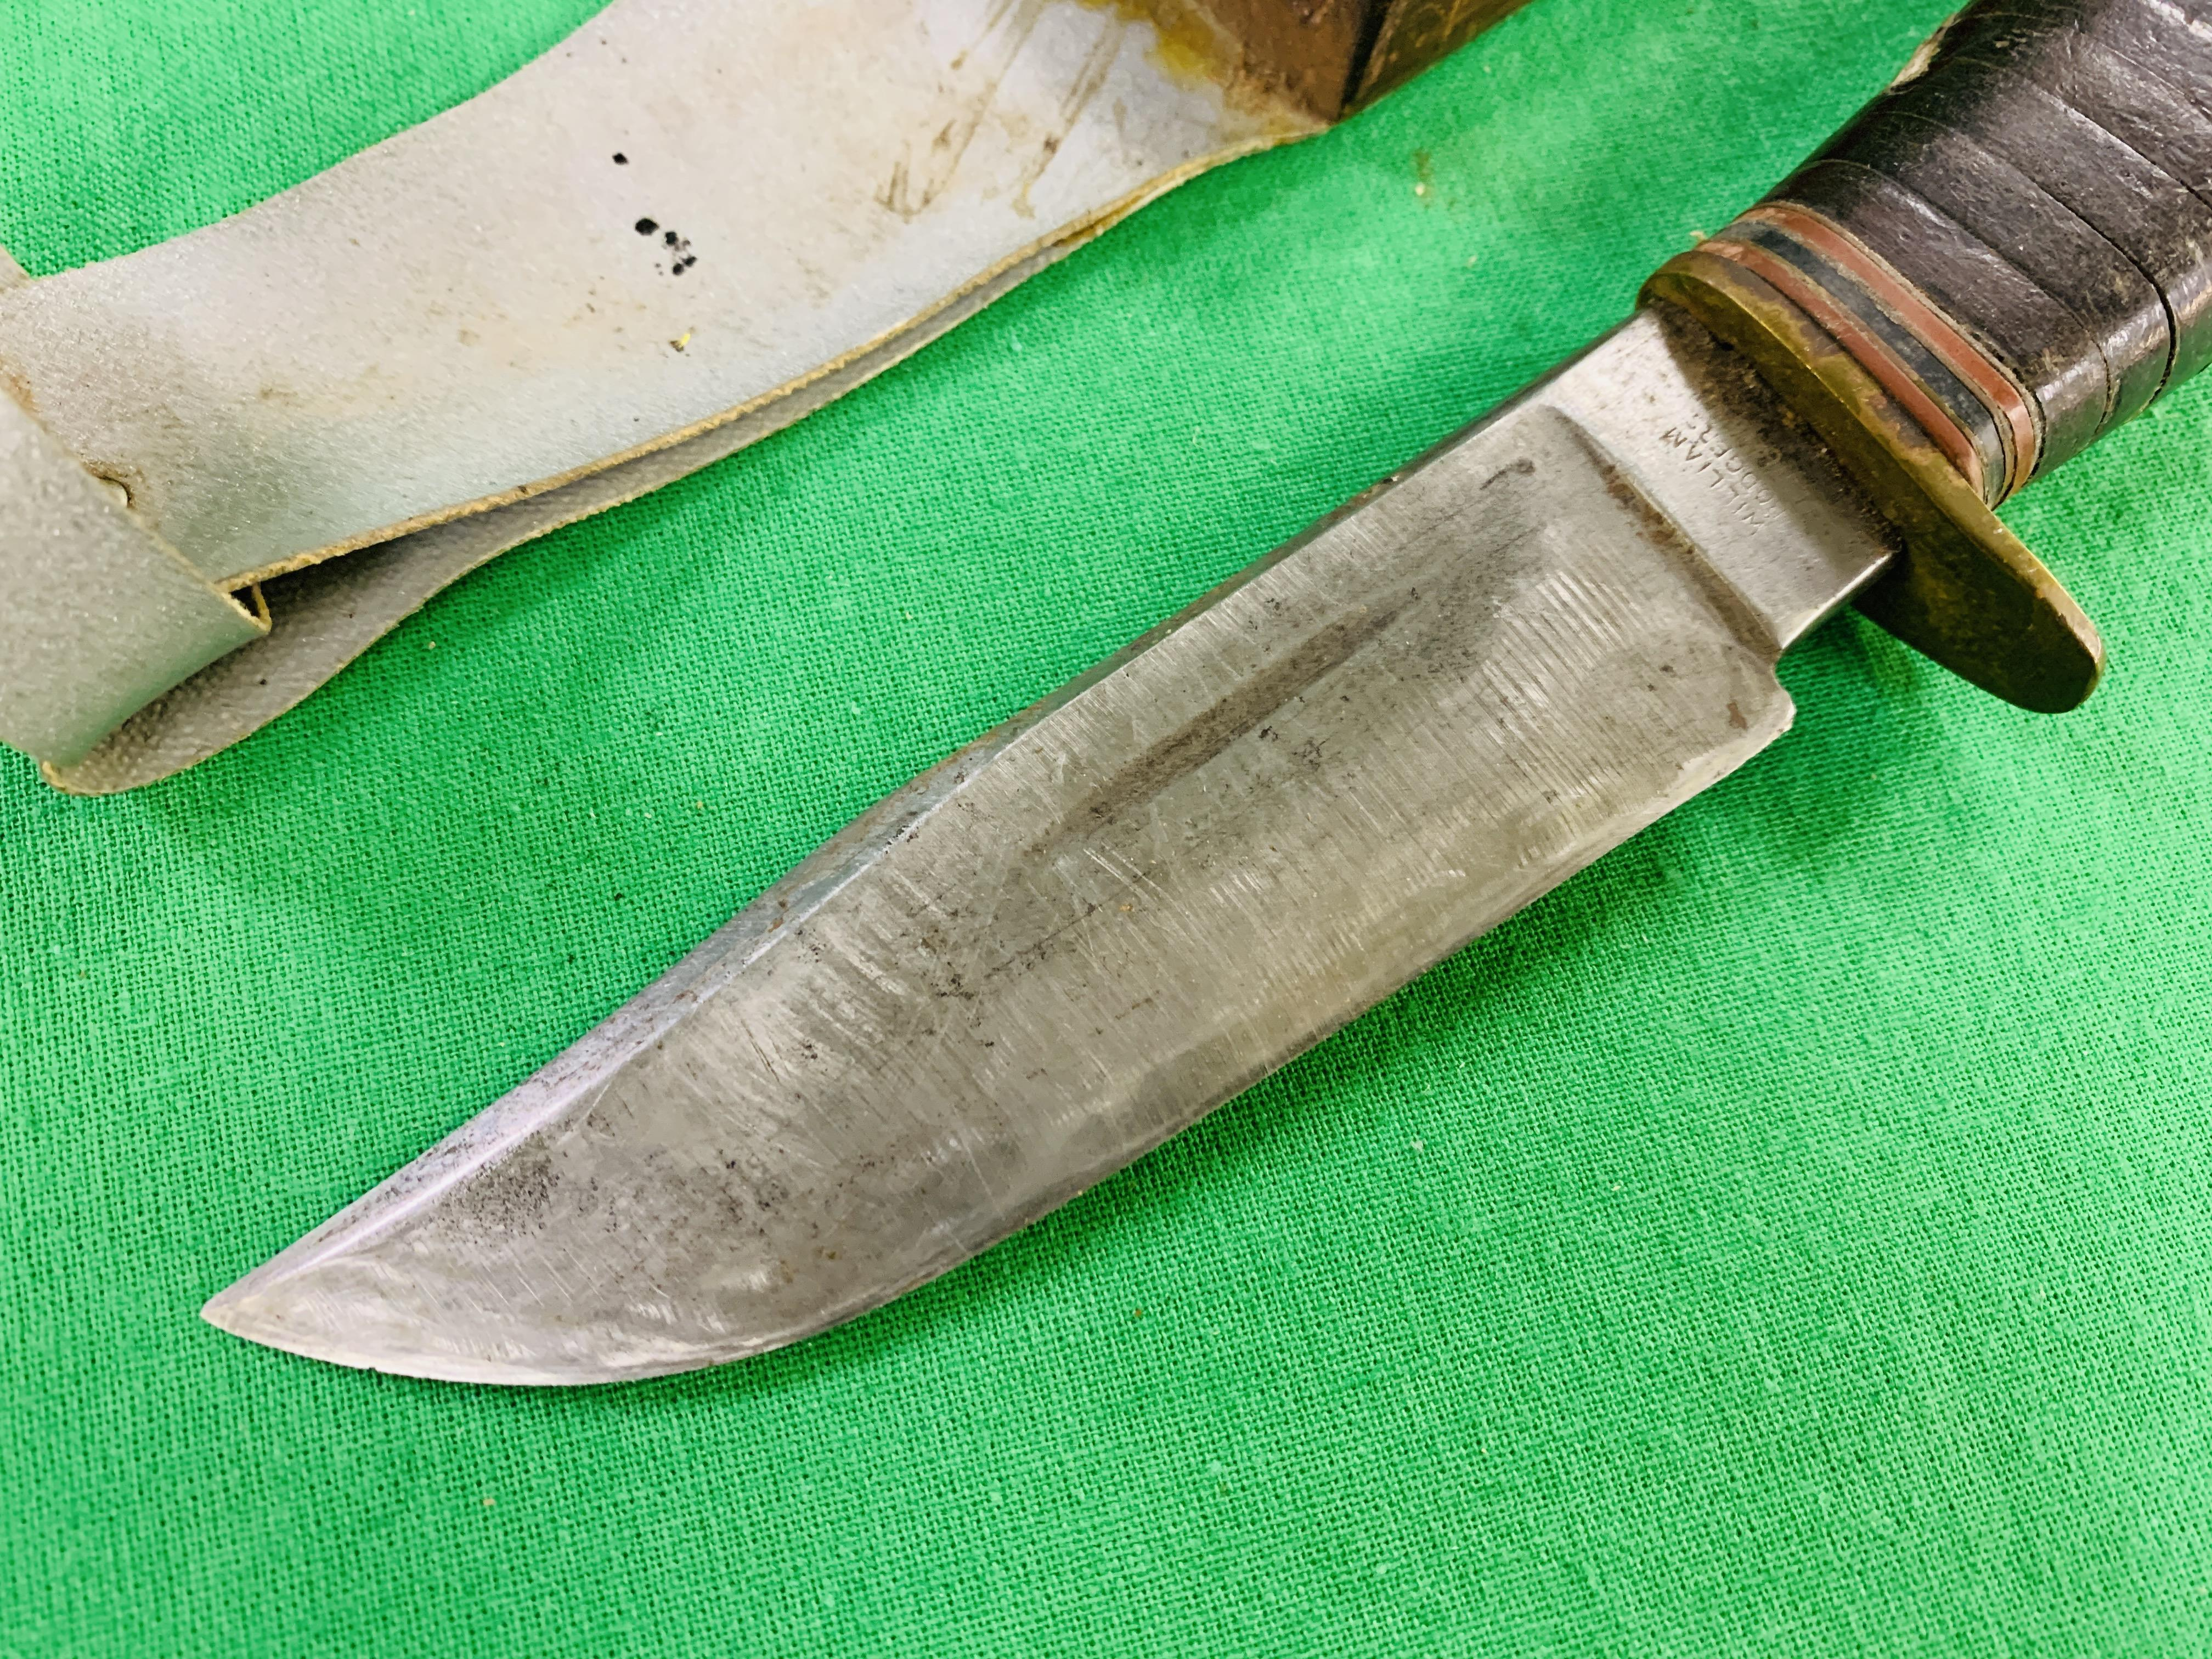 """A SCOUTING """"I CUT MY WAY"""" KNIFE IN SHEAF - Image 2 of 8"""